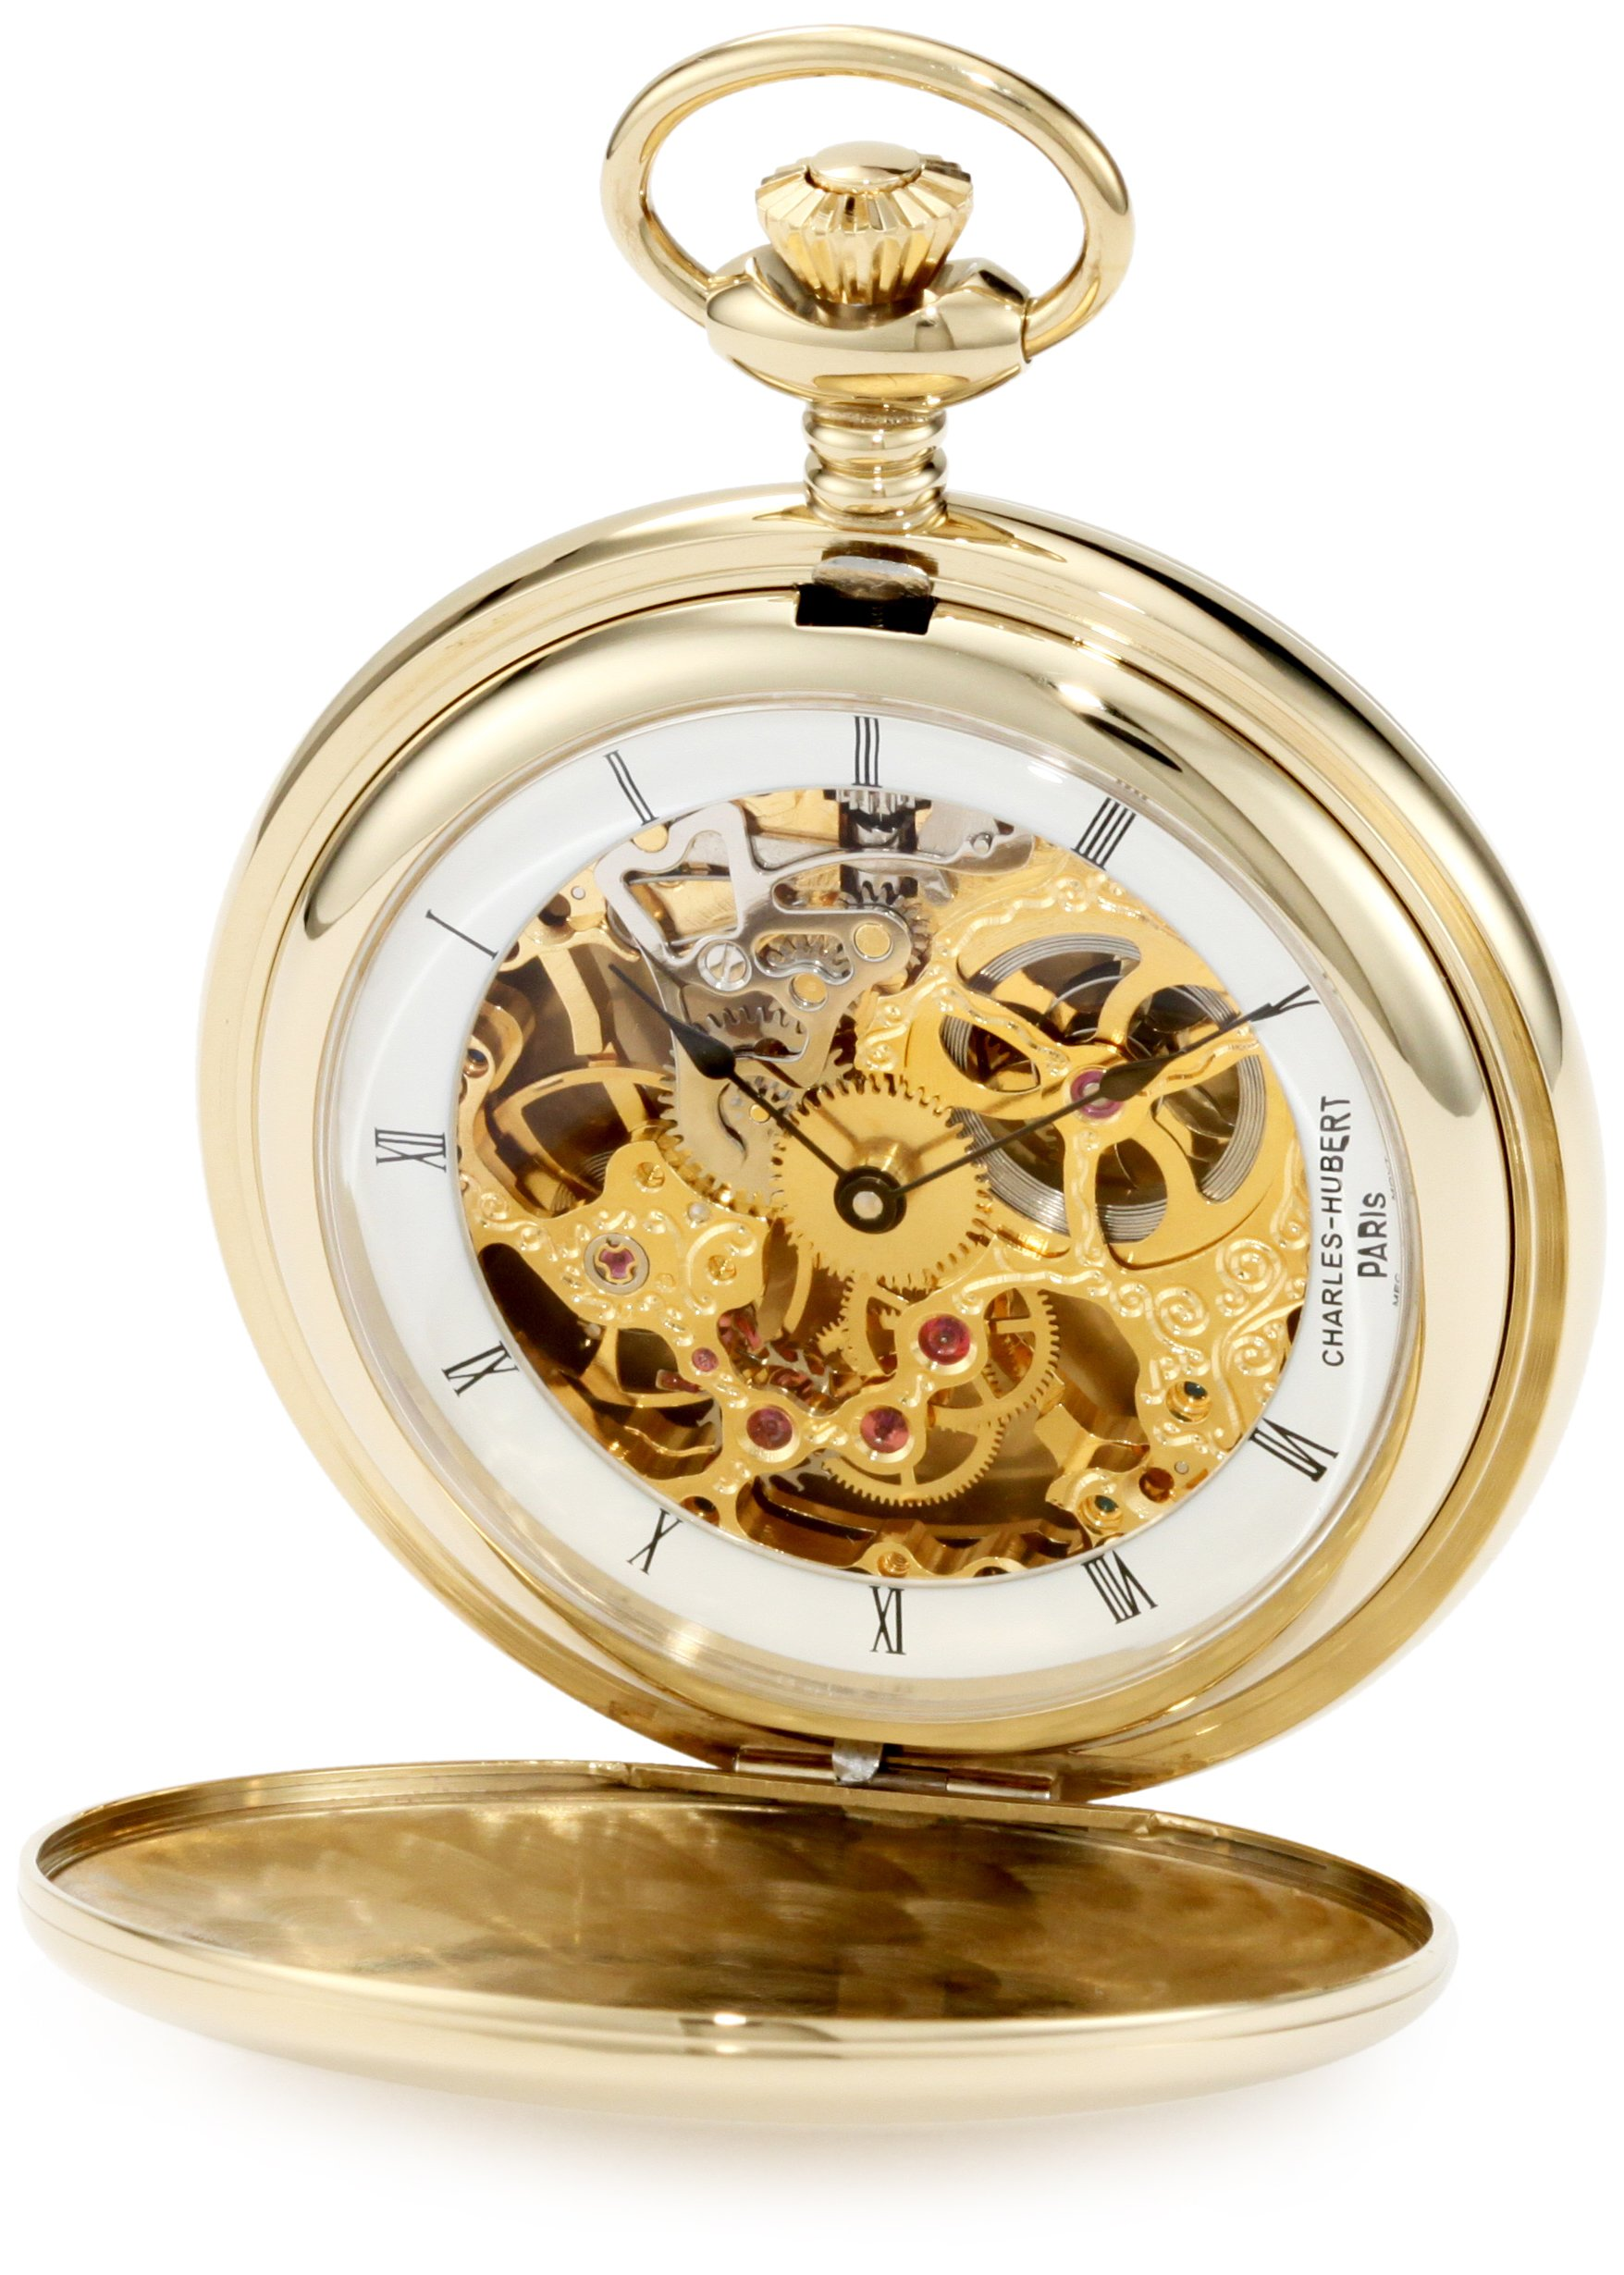 Charles-Hubert, Paris 3905-G Premium Collection Gold-Plated Stainless Steel Polished Finish Double Hunter Case Mechanical Pocket Watch